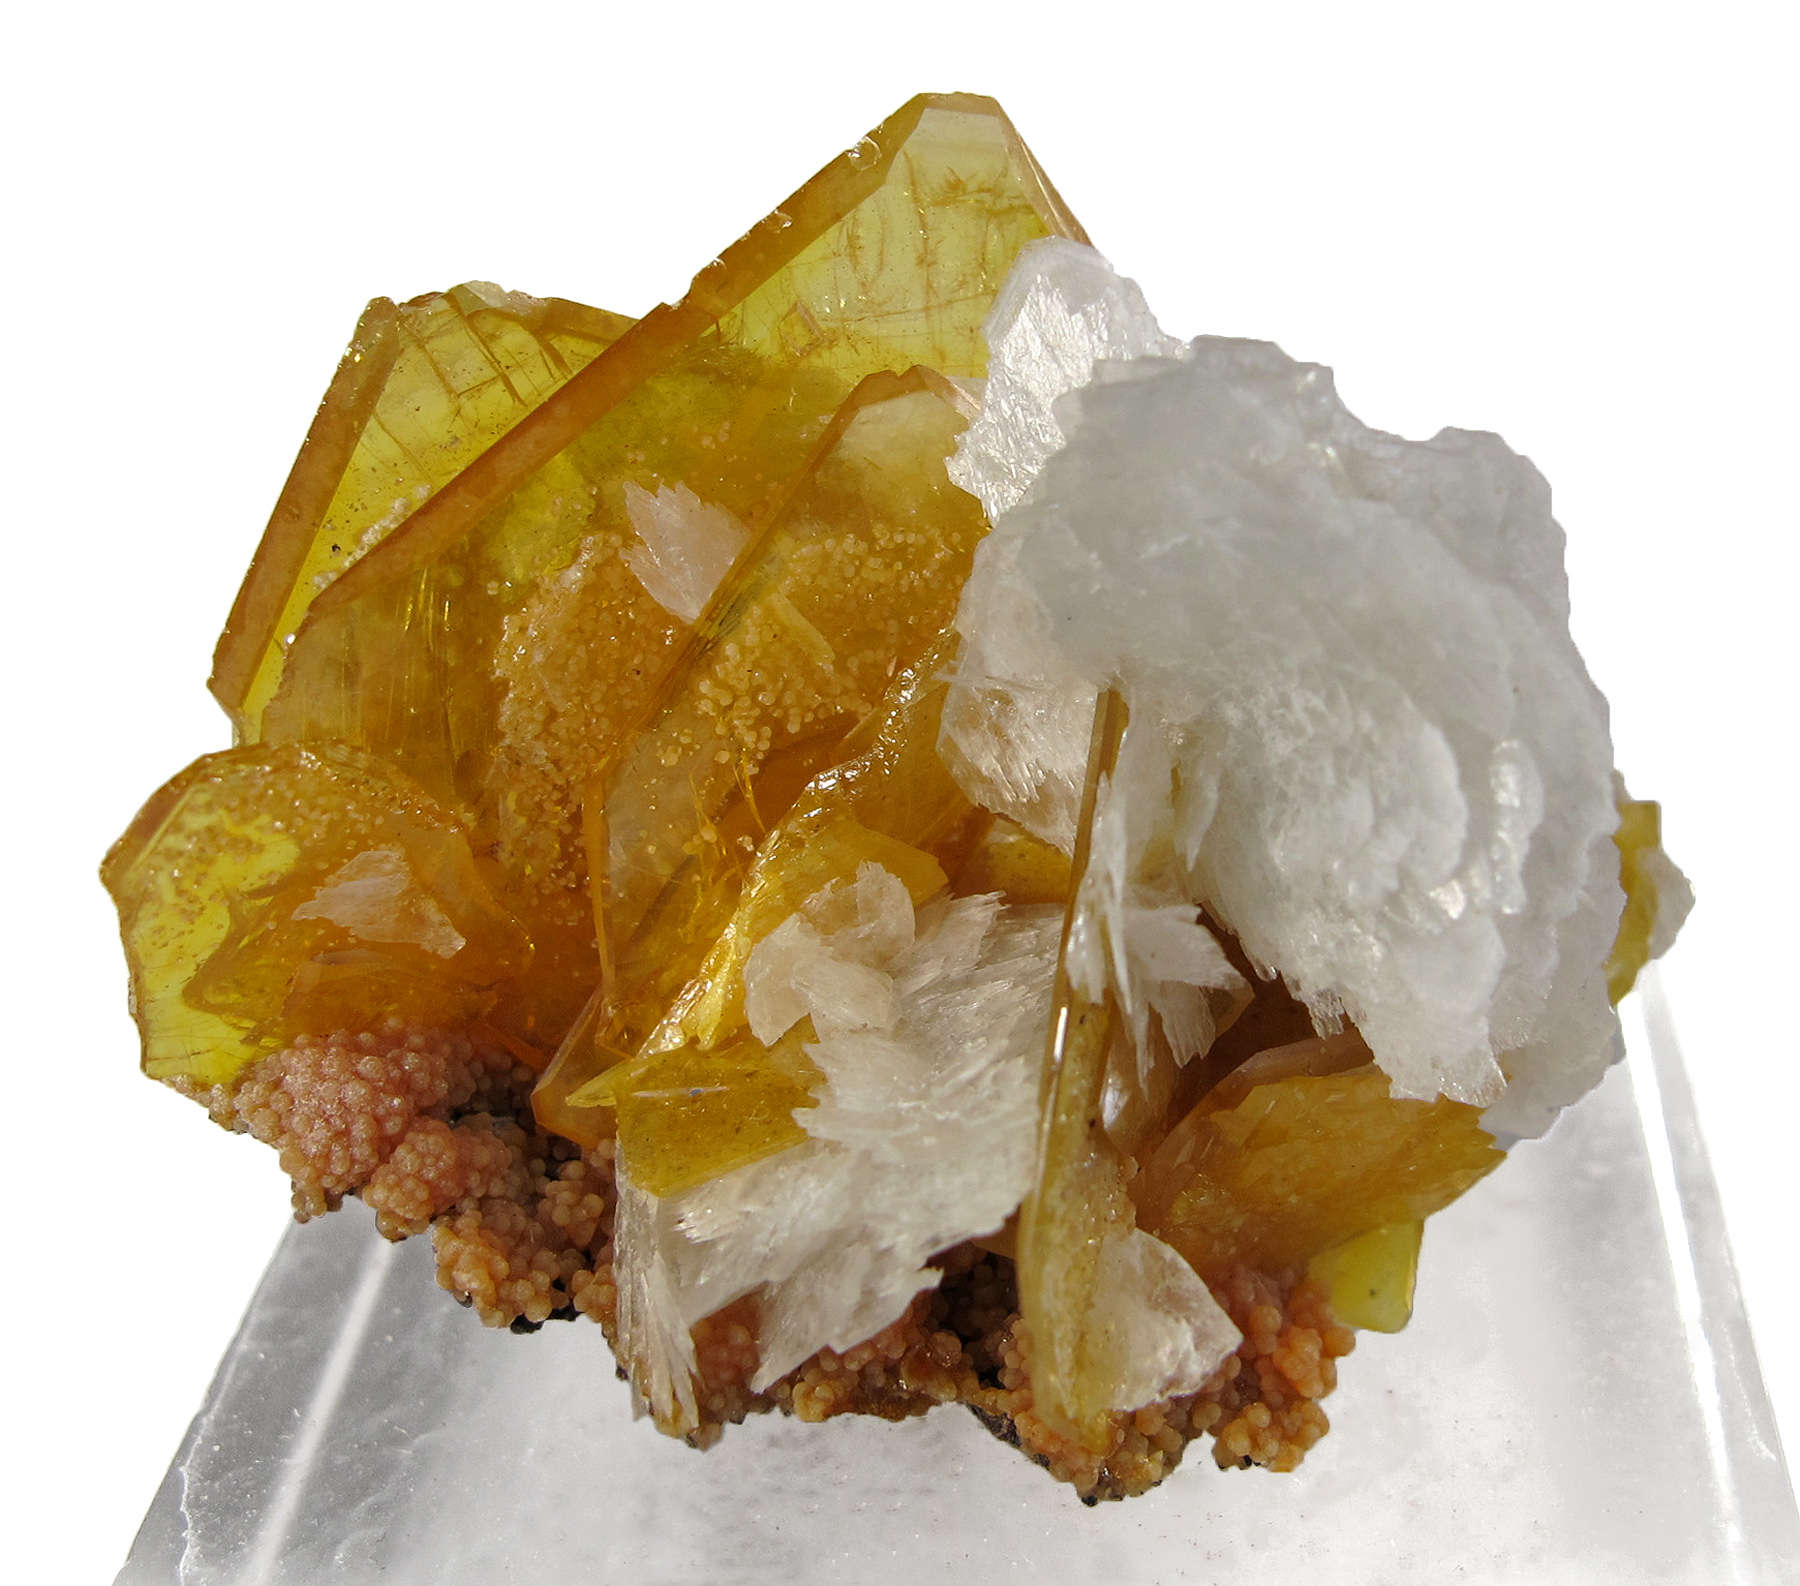 A cute miniature mid 1970s finds The bladed crystals white Baryte